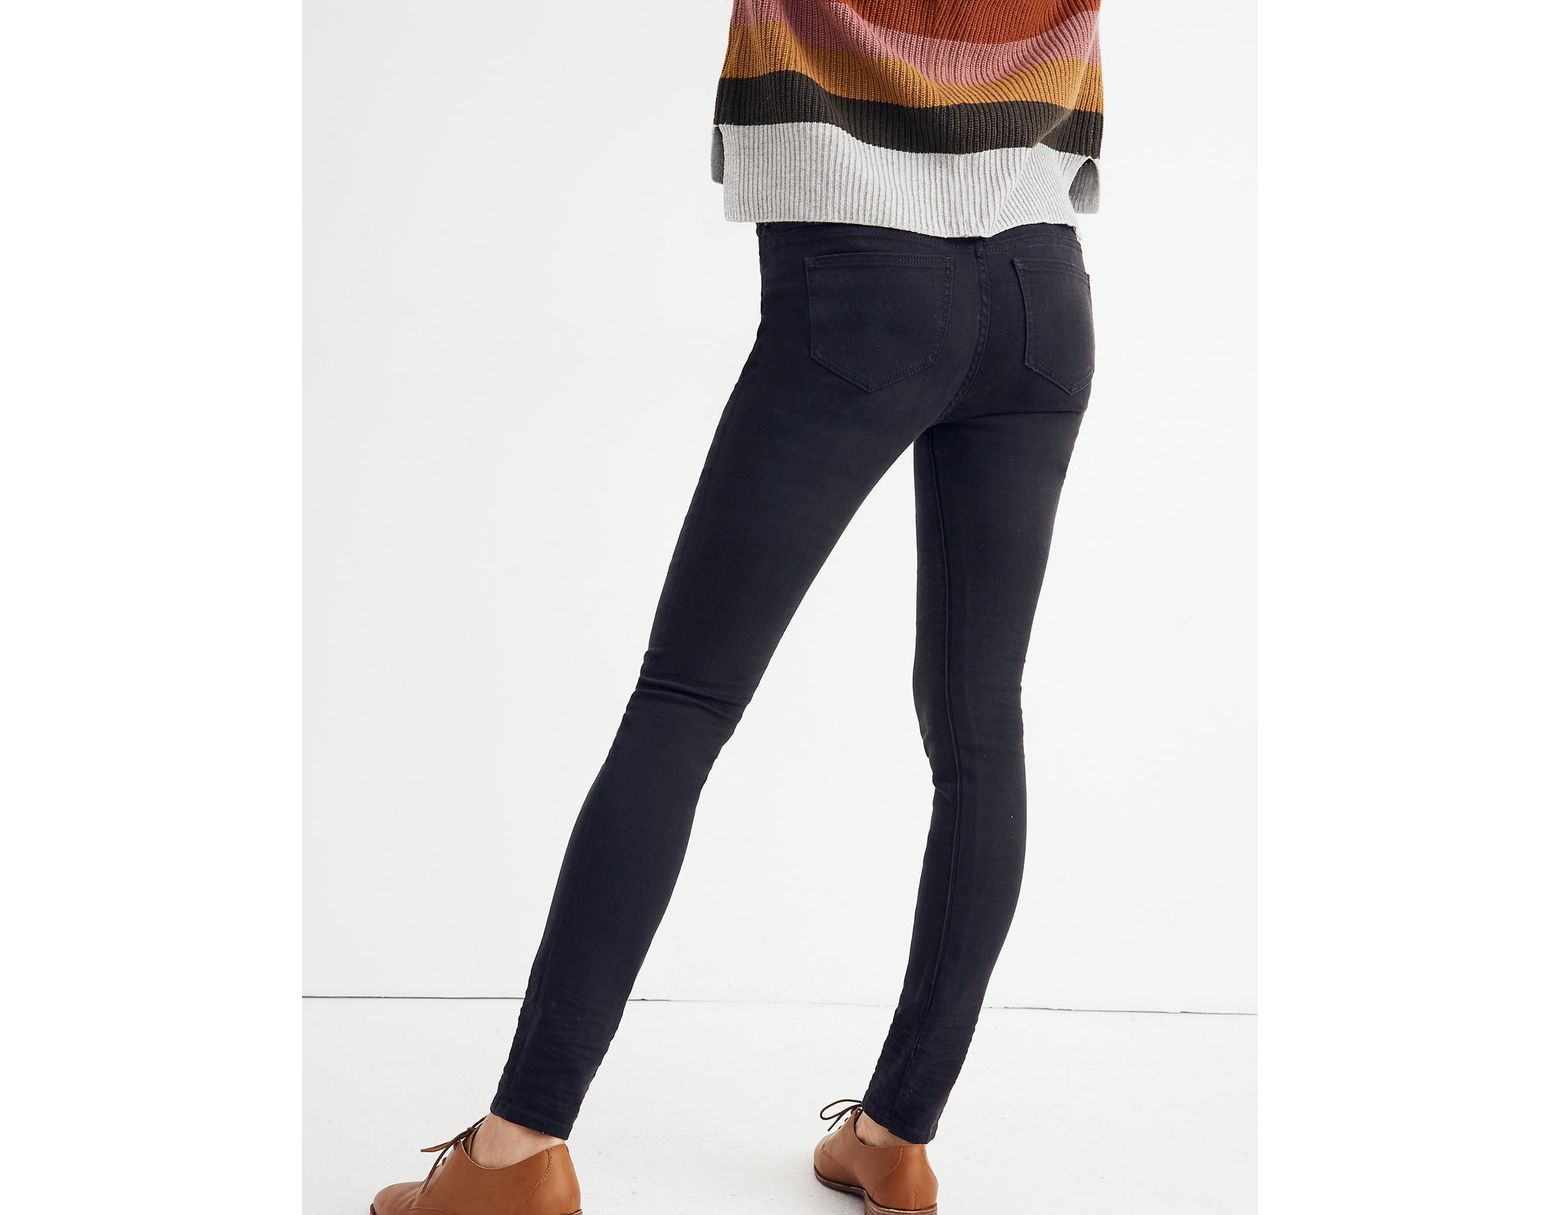 b7ab6fd4f2180 Lyst - Madewell Maternity Over-the-belly Skinny Jeans In Lunar Wash:  ™ Edition in Blue